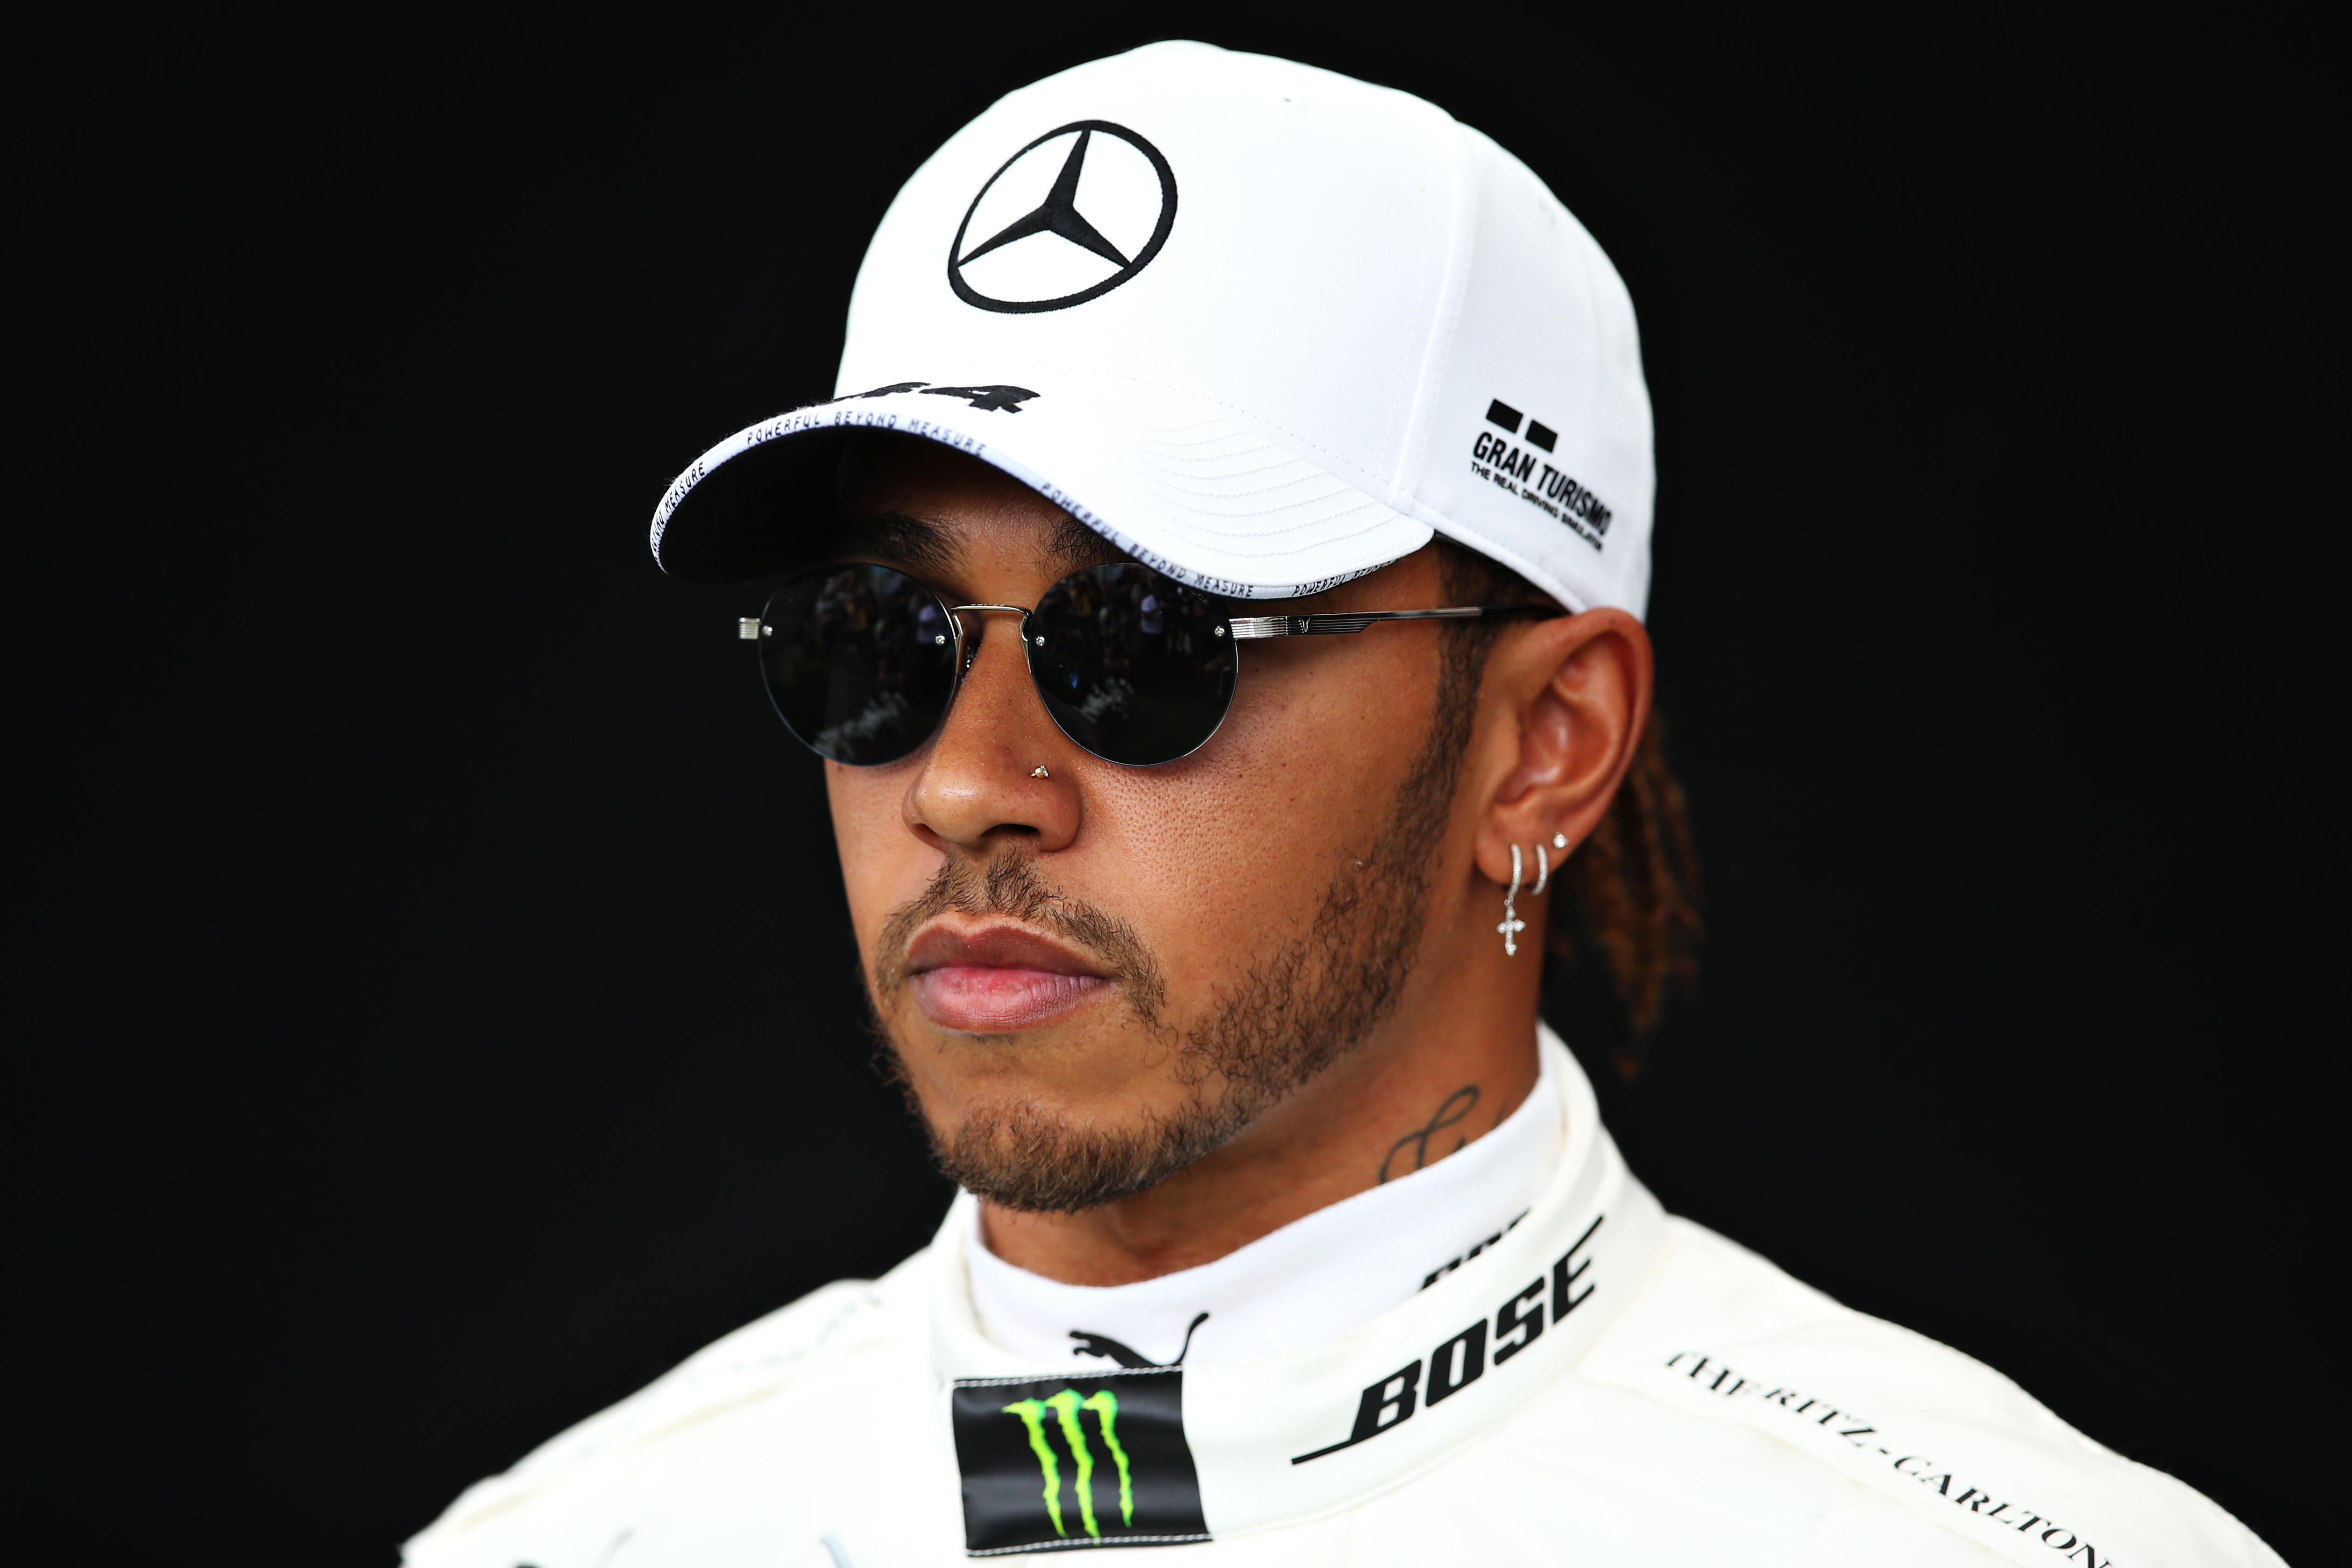 MELBOURNE, AUSTRALIA - MARCH 12: Lewis Hamilton of Great Britain and Mercedes GP poses for a photo in the Paddock during previews ahead of the F1 Grand Prix of Australia at Melbourne Grand Prix Circuit on March 12, 2020 in Melbourne, Australia. (Photo by Charles Coates/Getty Images)